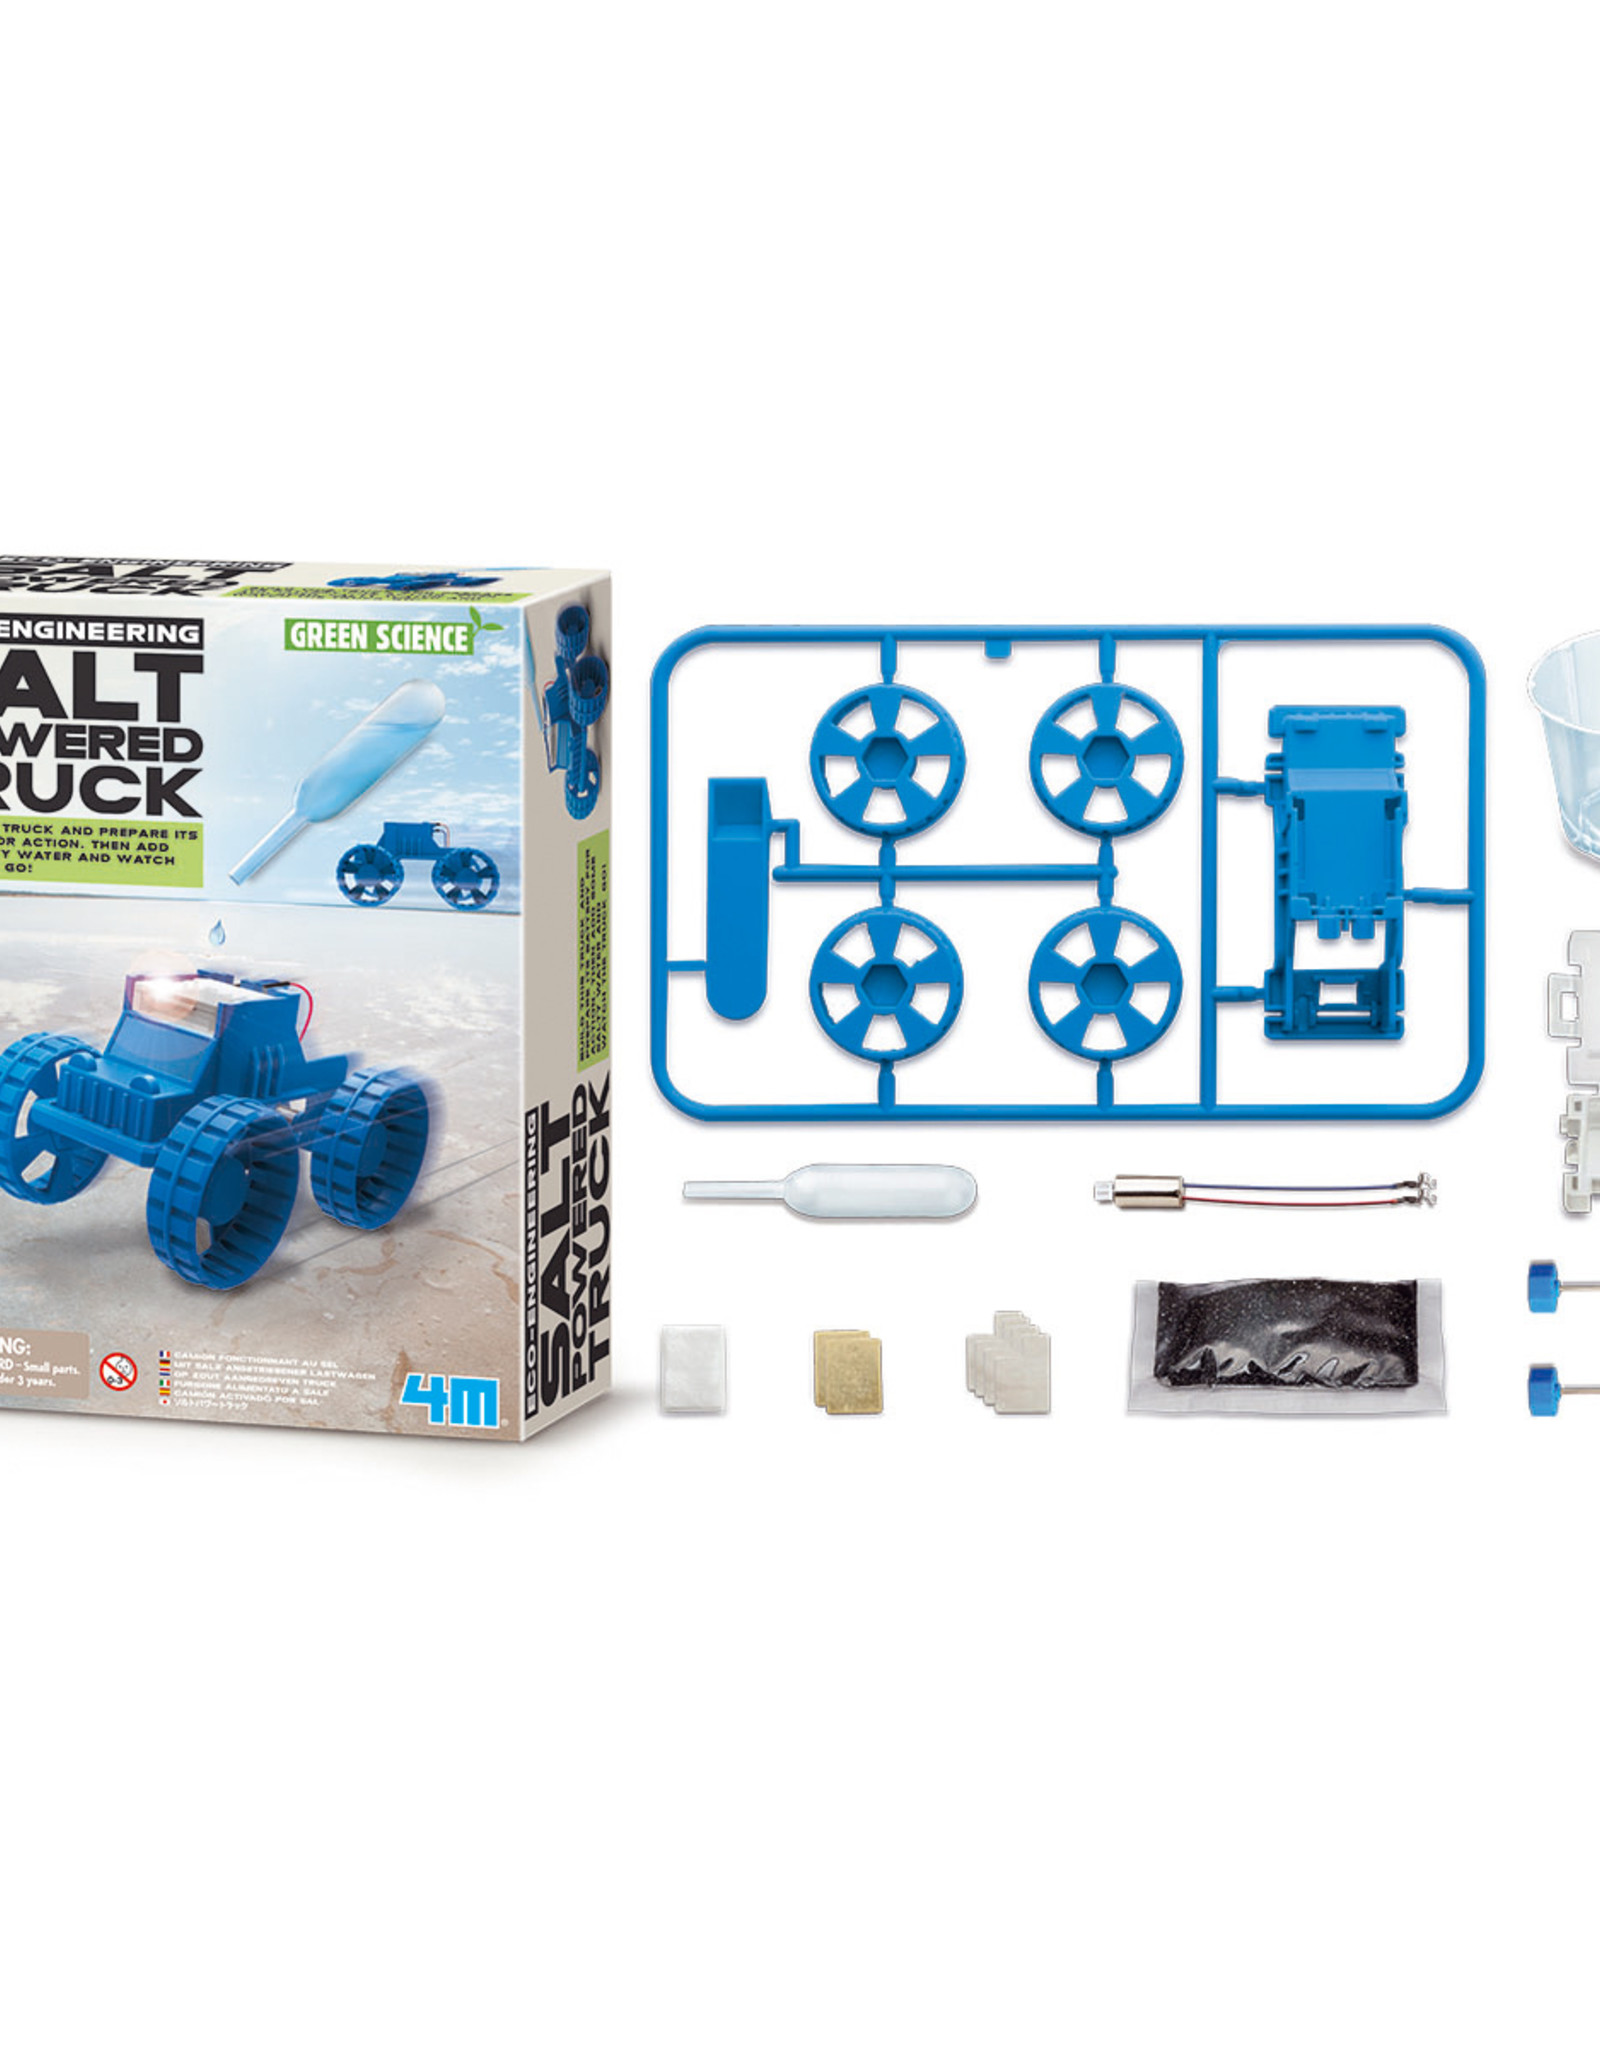 4M Kidzlabs GREEN SCIENCE - SALT-POWERED TRUCK